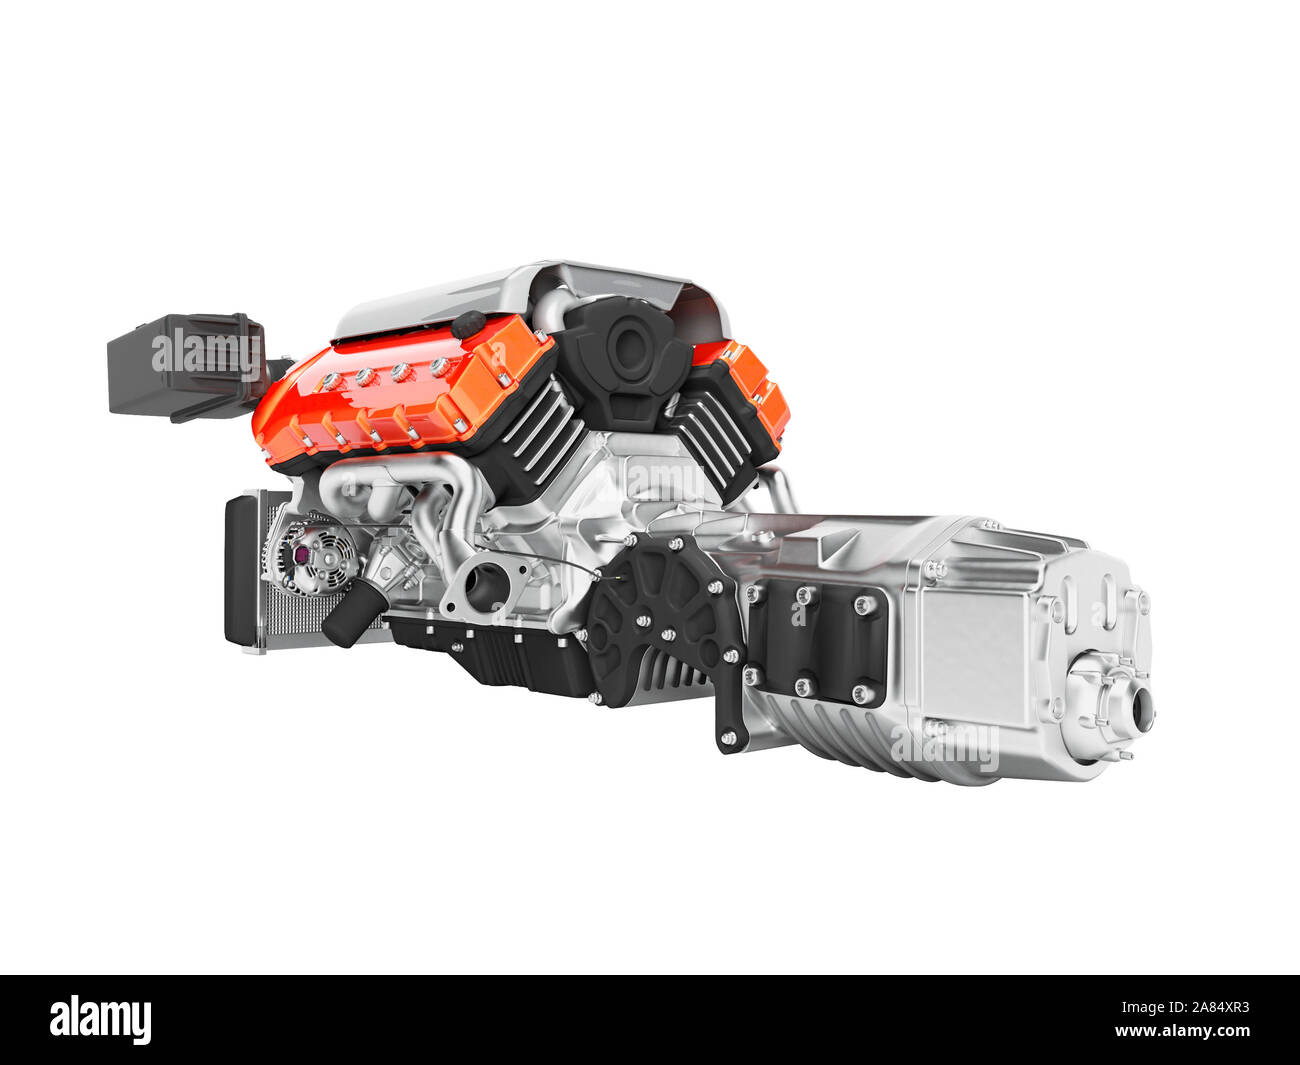 Car engine with air filters and manifold gearbox 3d render on white background no shadow Stock Photo